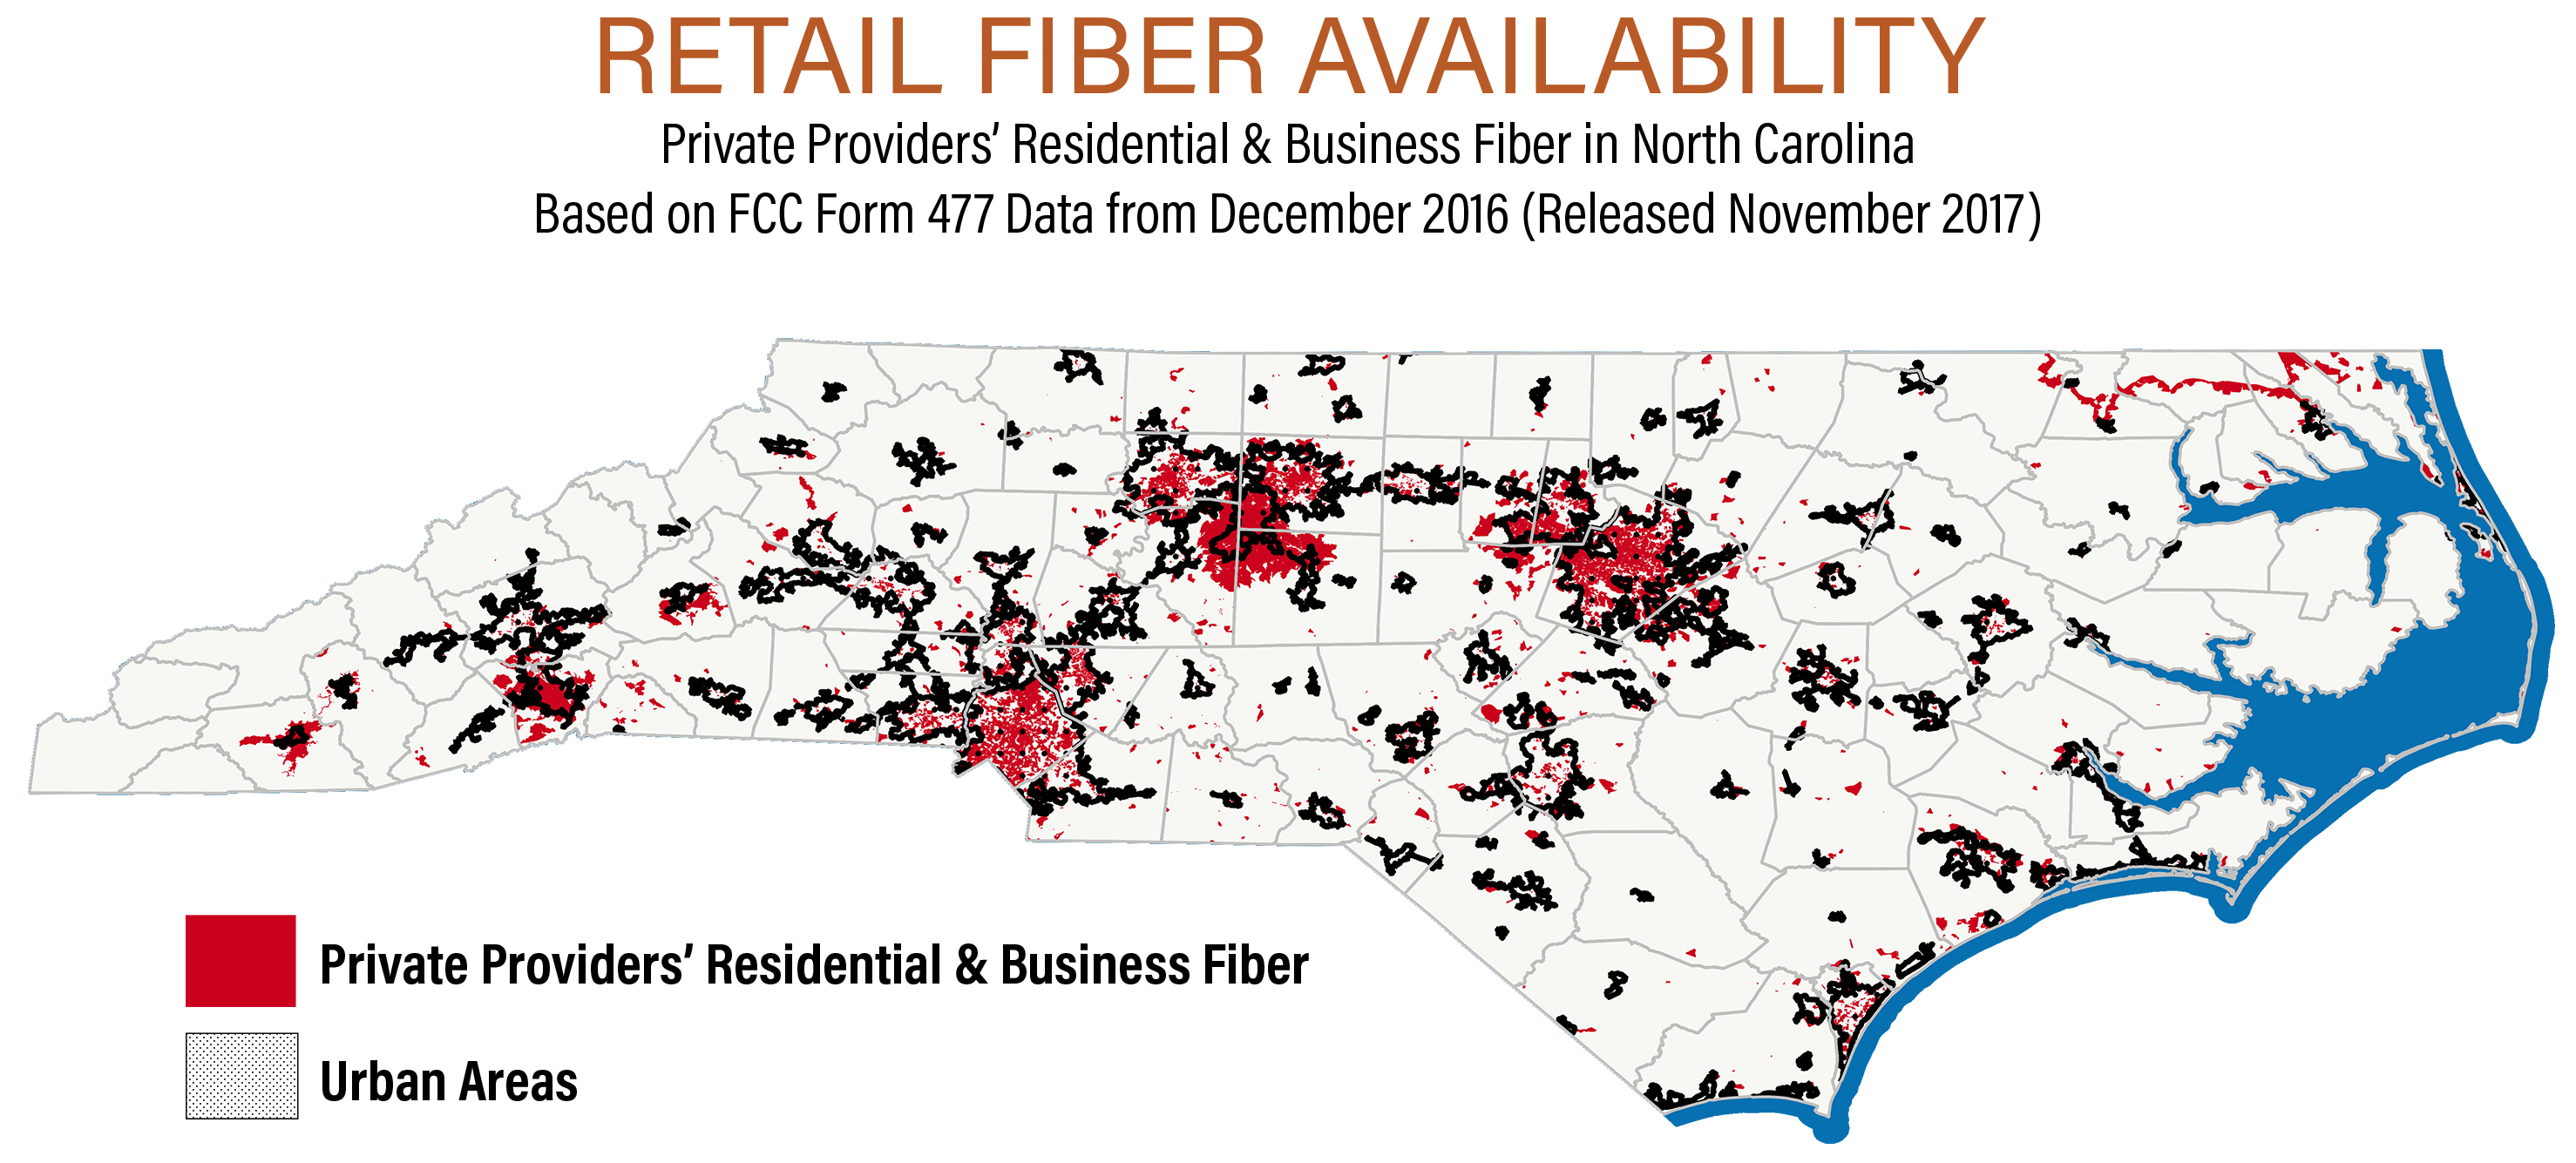 Sputtering debate over NC internet access may have new urgency on